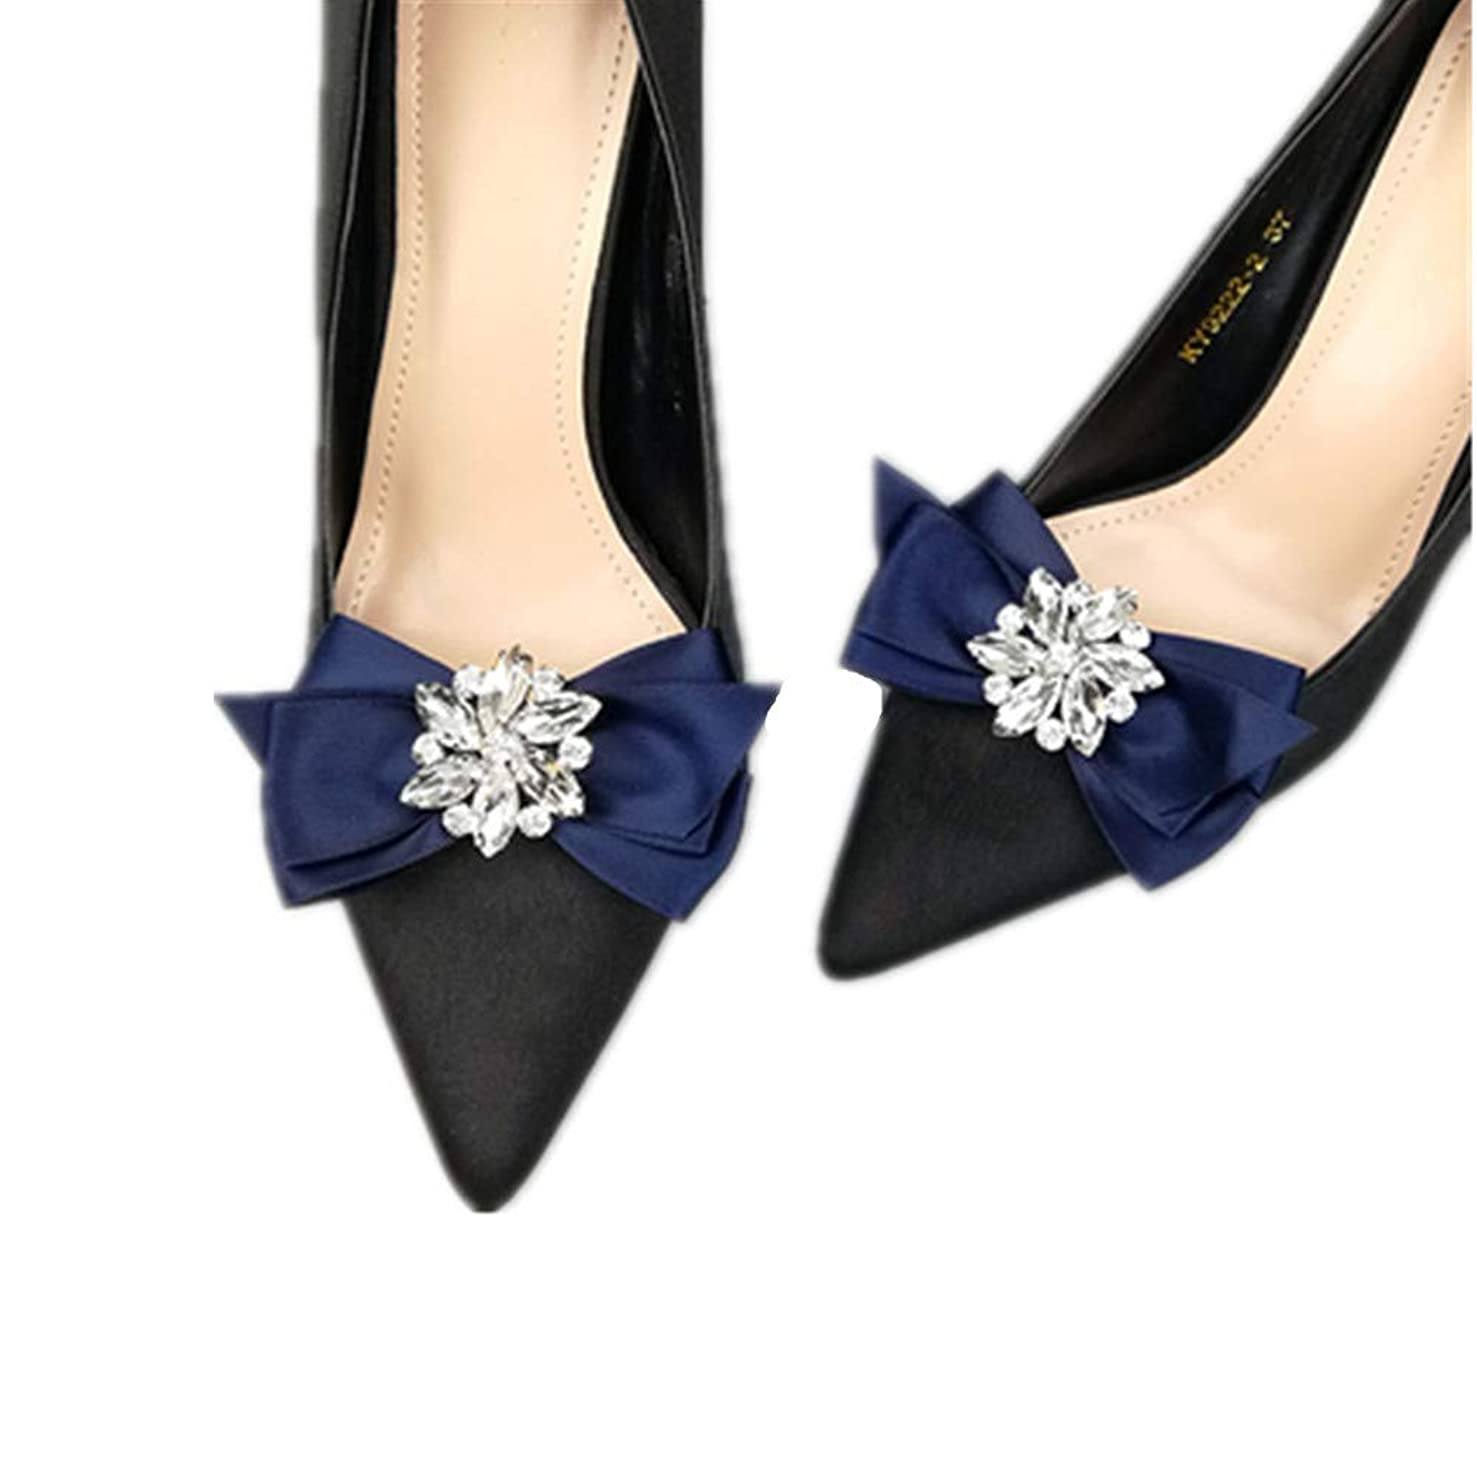 Douqu Rhinestone Crystal Wedding Bridal Shoe Bow Boots Clips detachable shoes buckle Shoe Decoration Charms Pair Jewelry (Navy Blue)